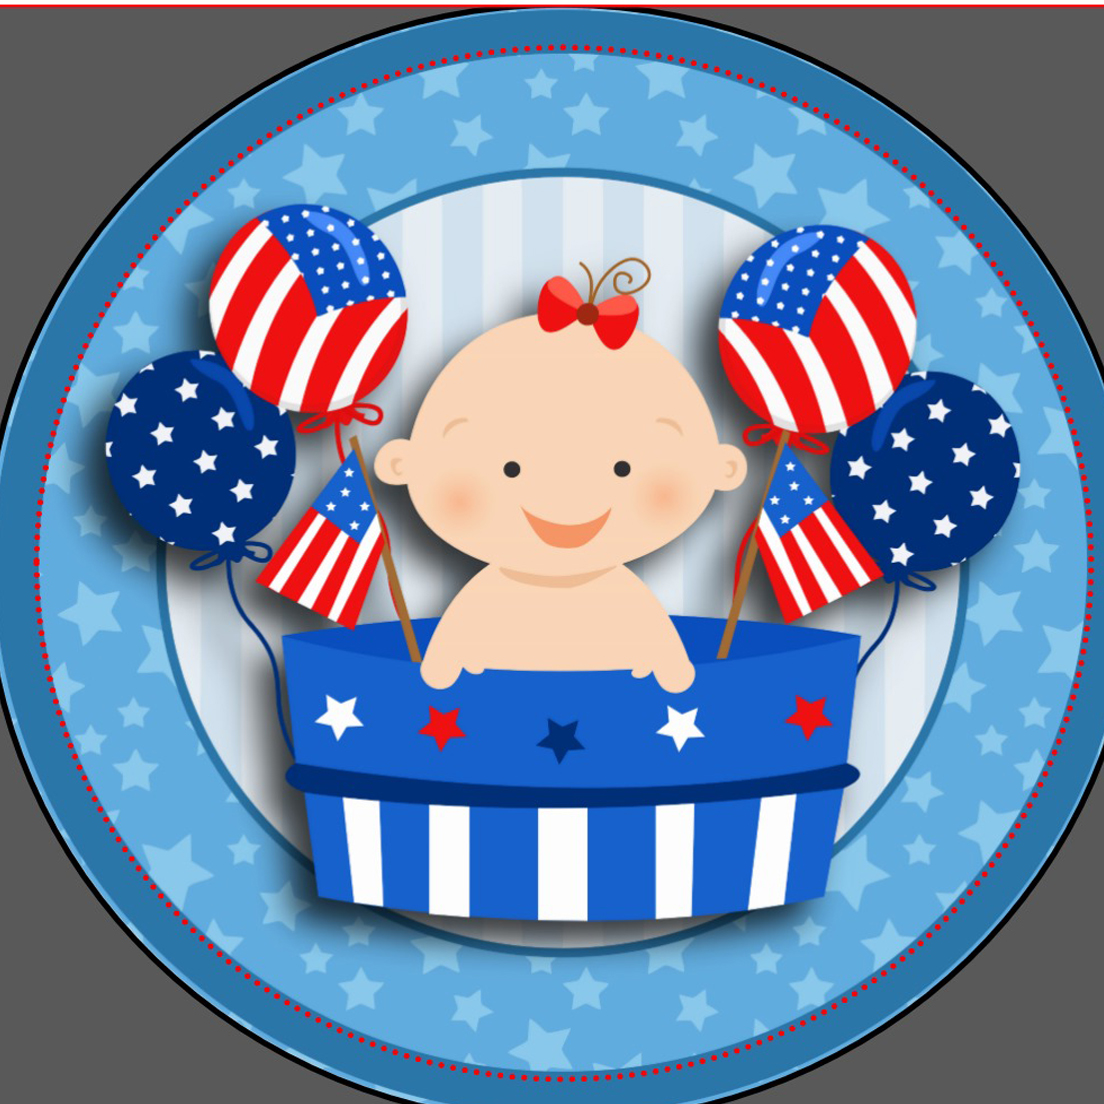 Baby clipart 4th july Baby Fourth Shower shower July